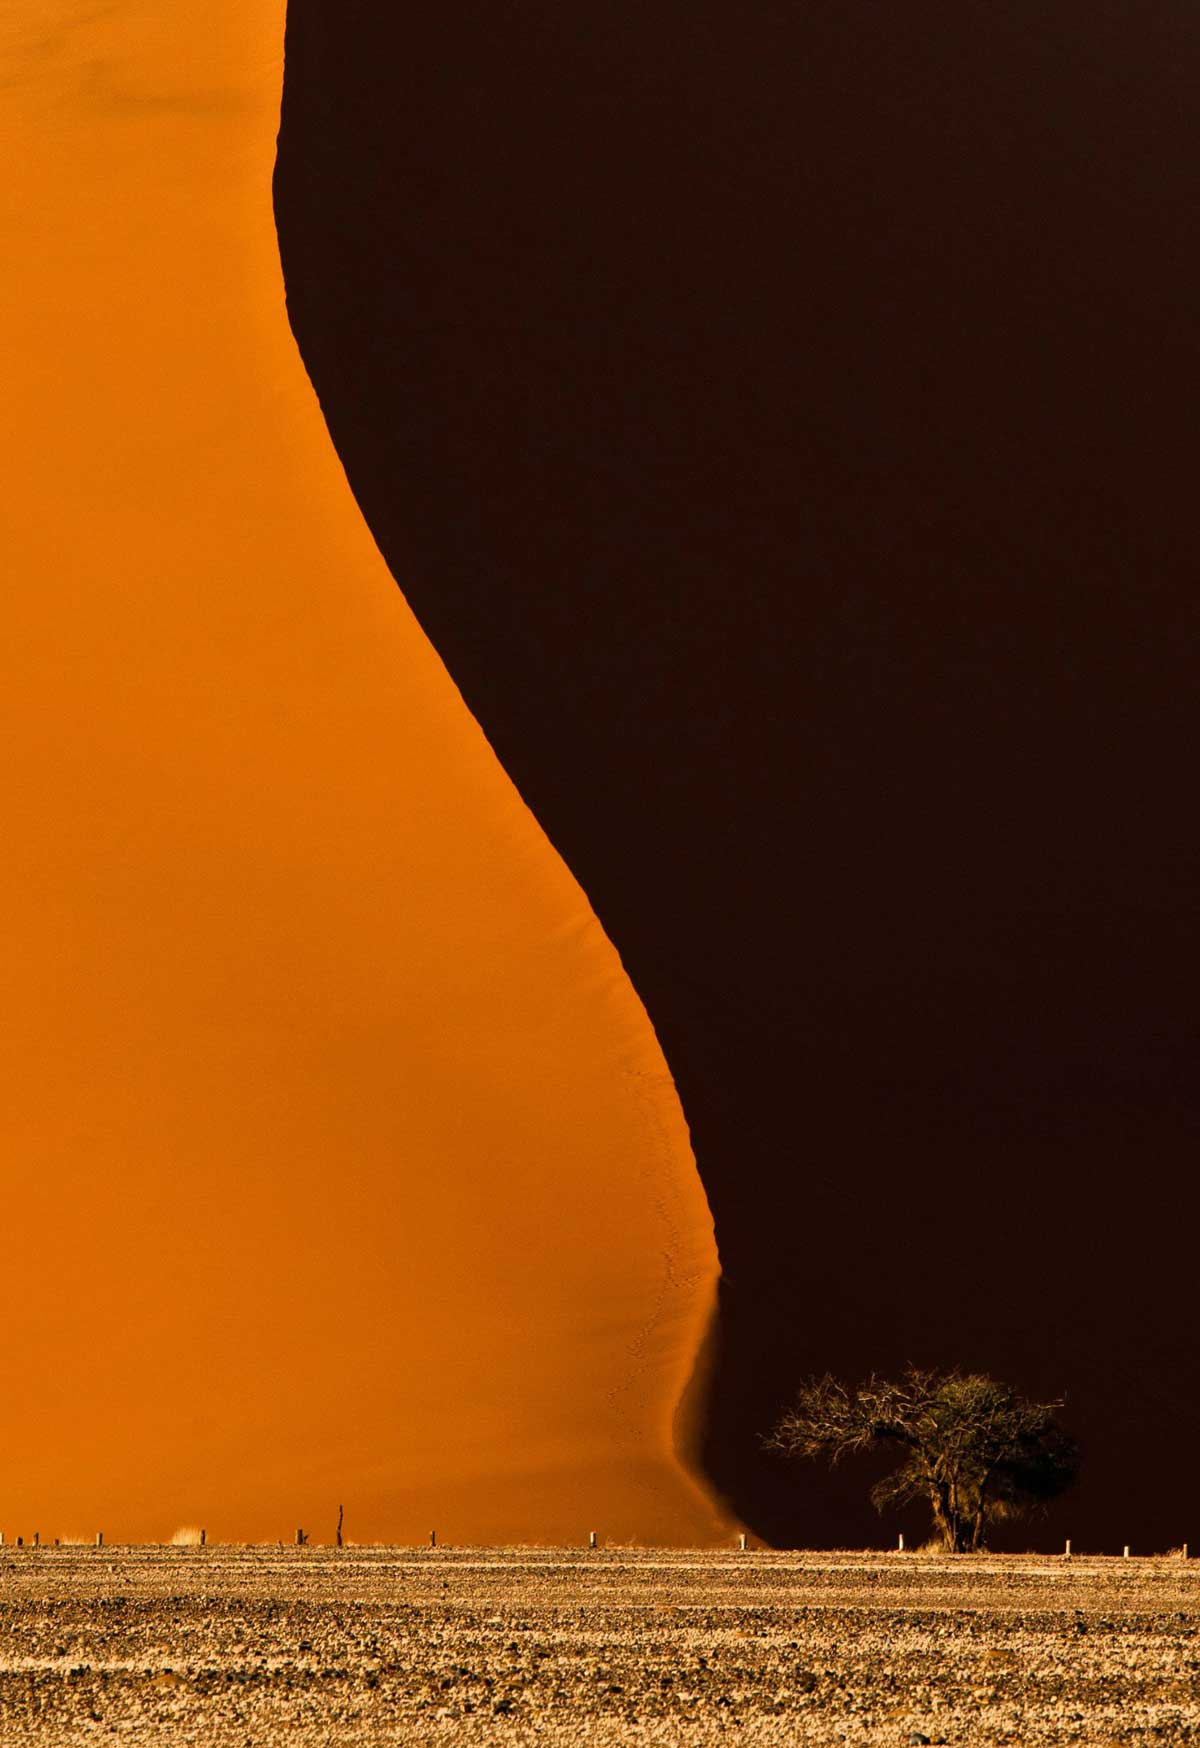 Gigantic sand dune in Namibia